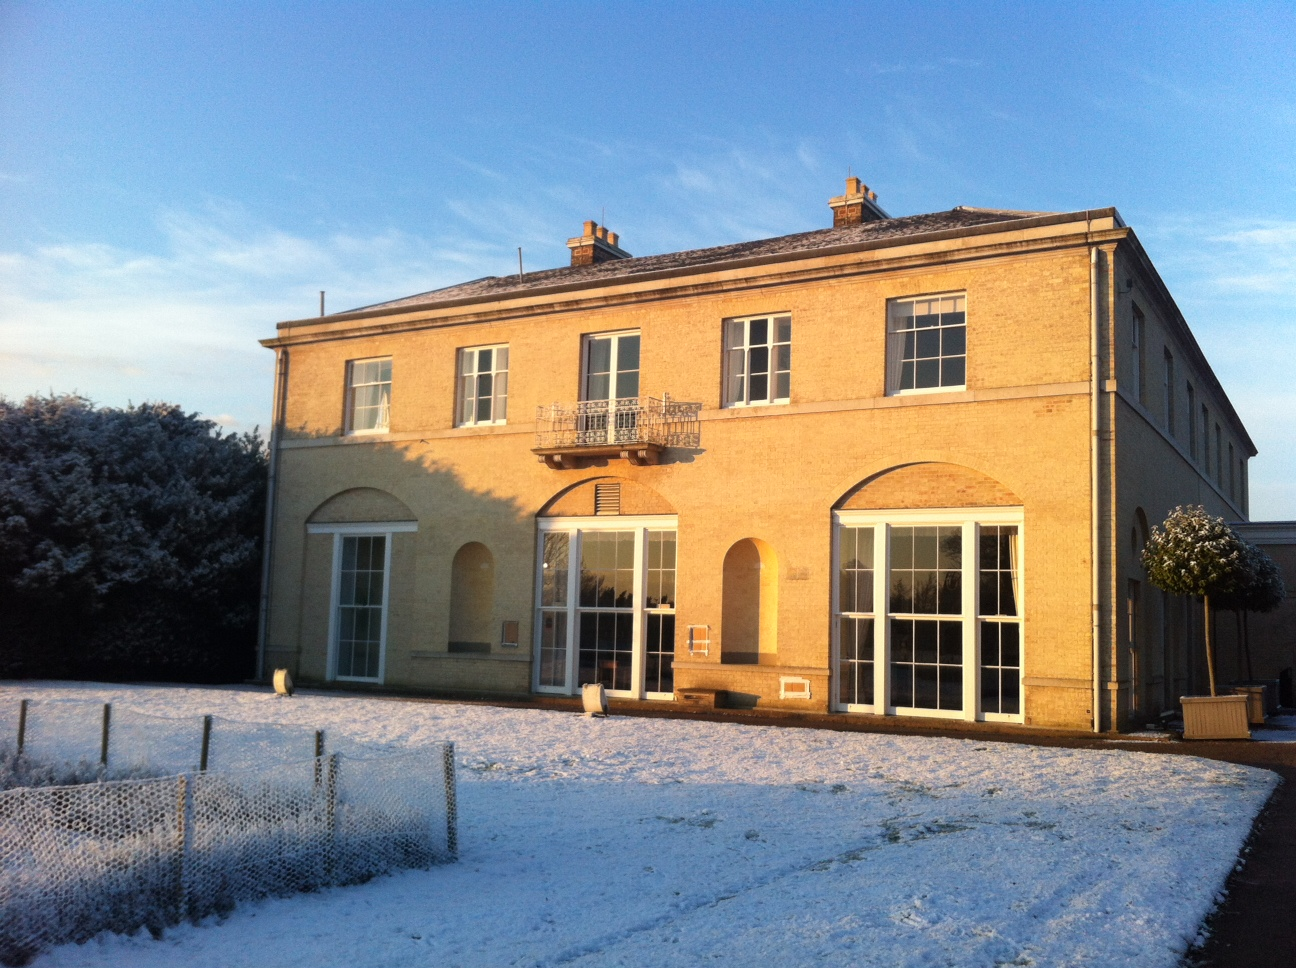 The Mansion in Winter